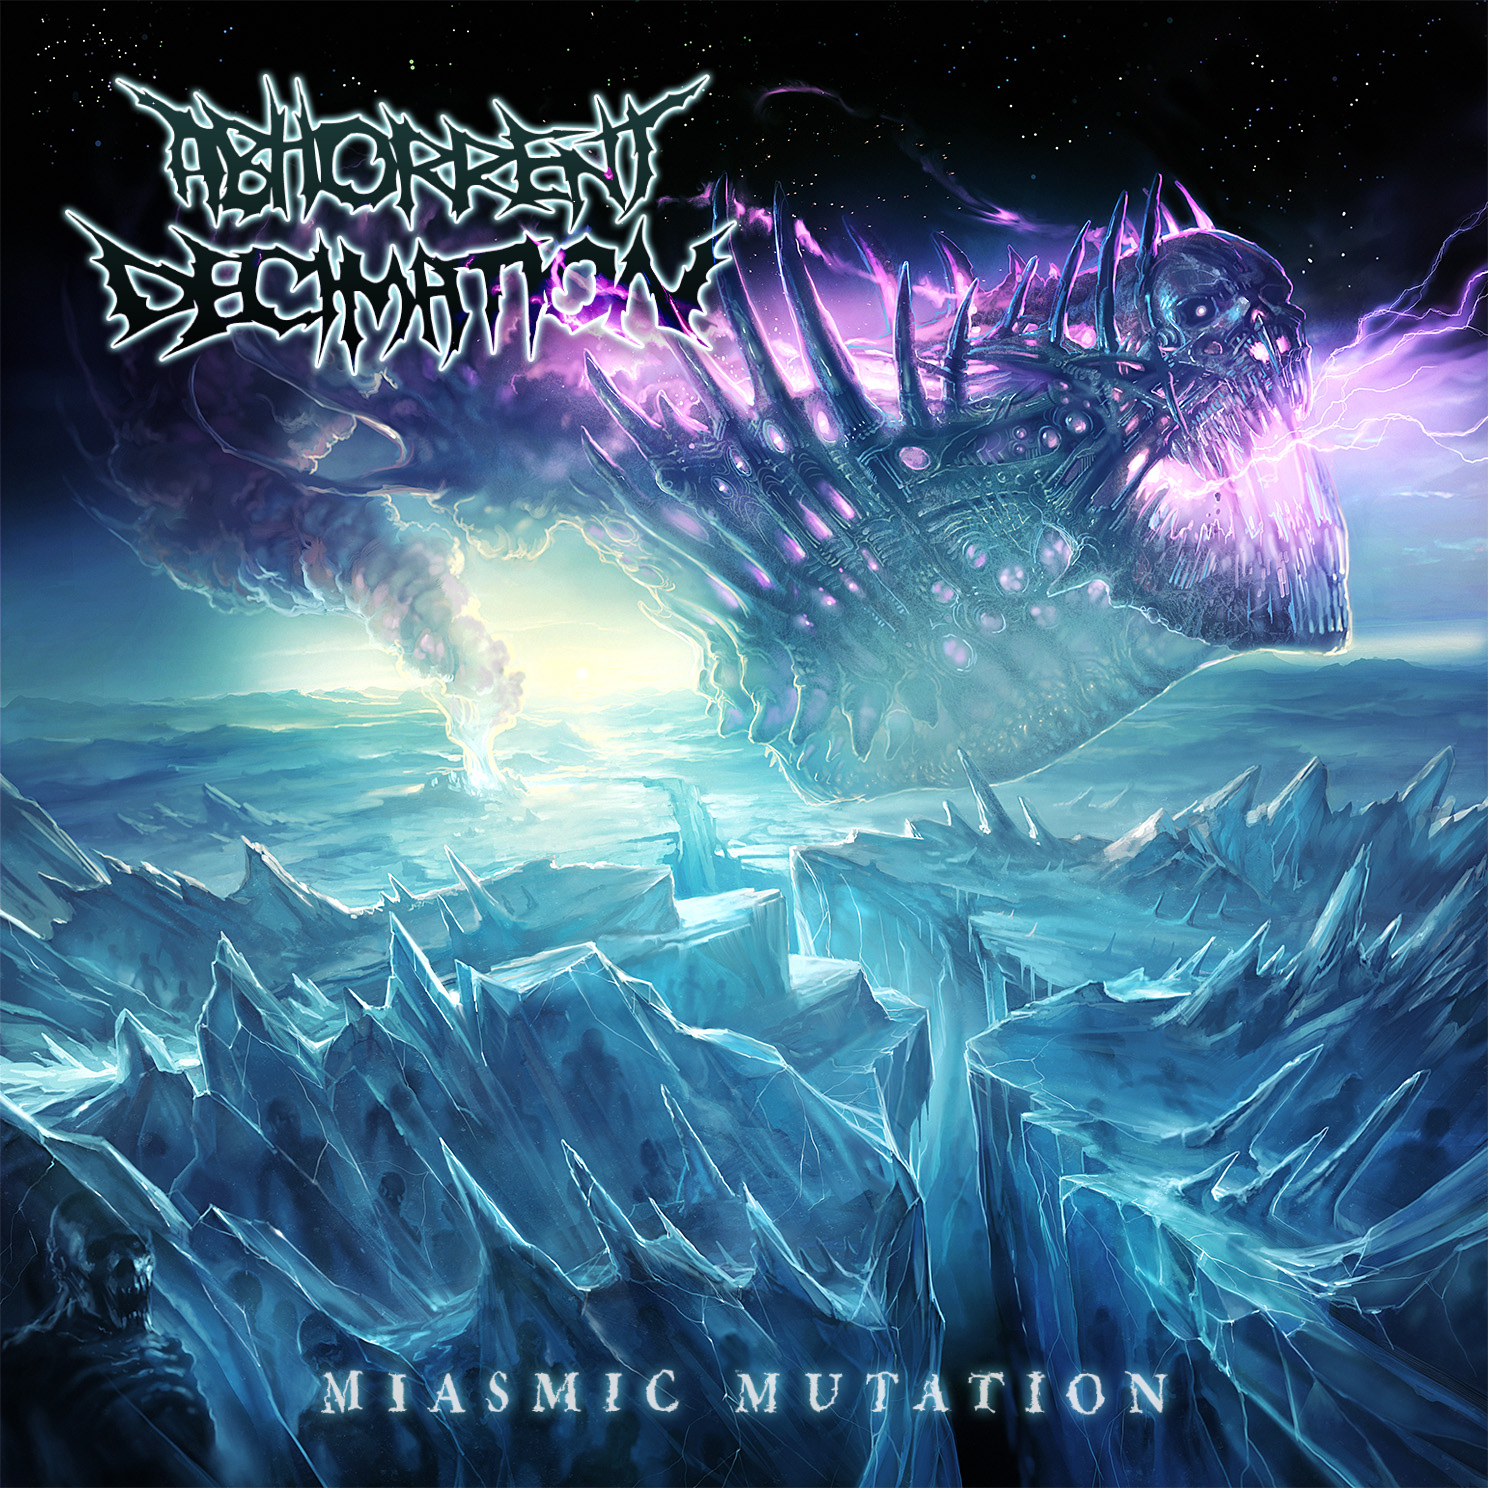 Abhorrent Decimation MIASMIC MUTATION